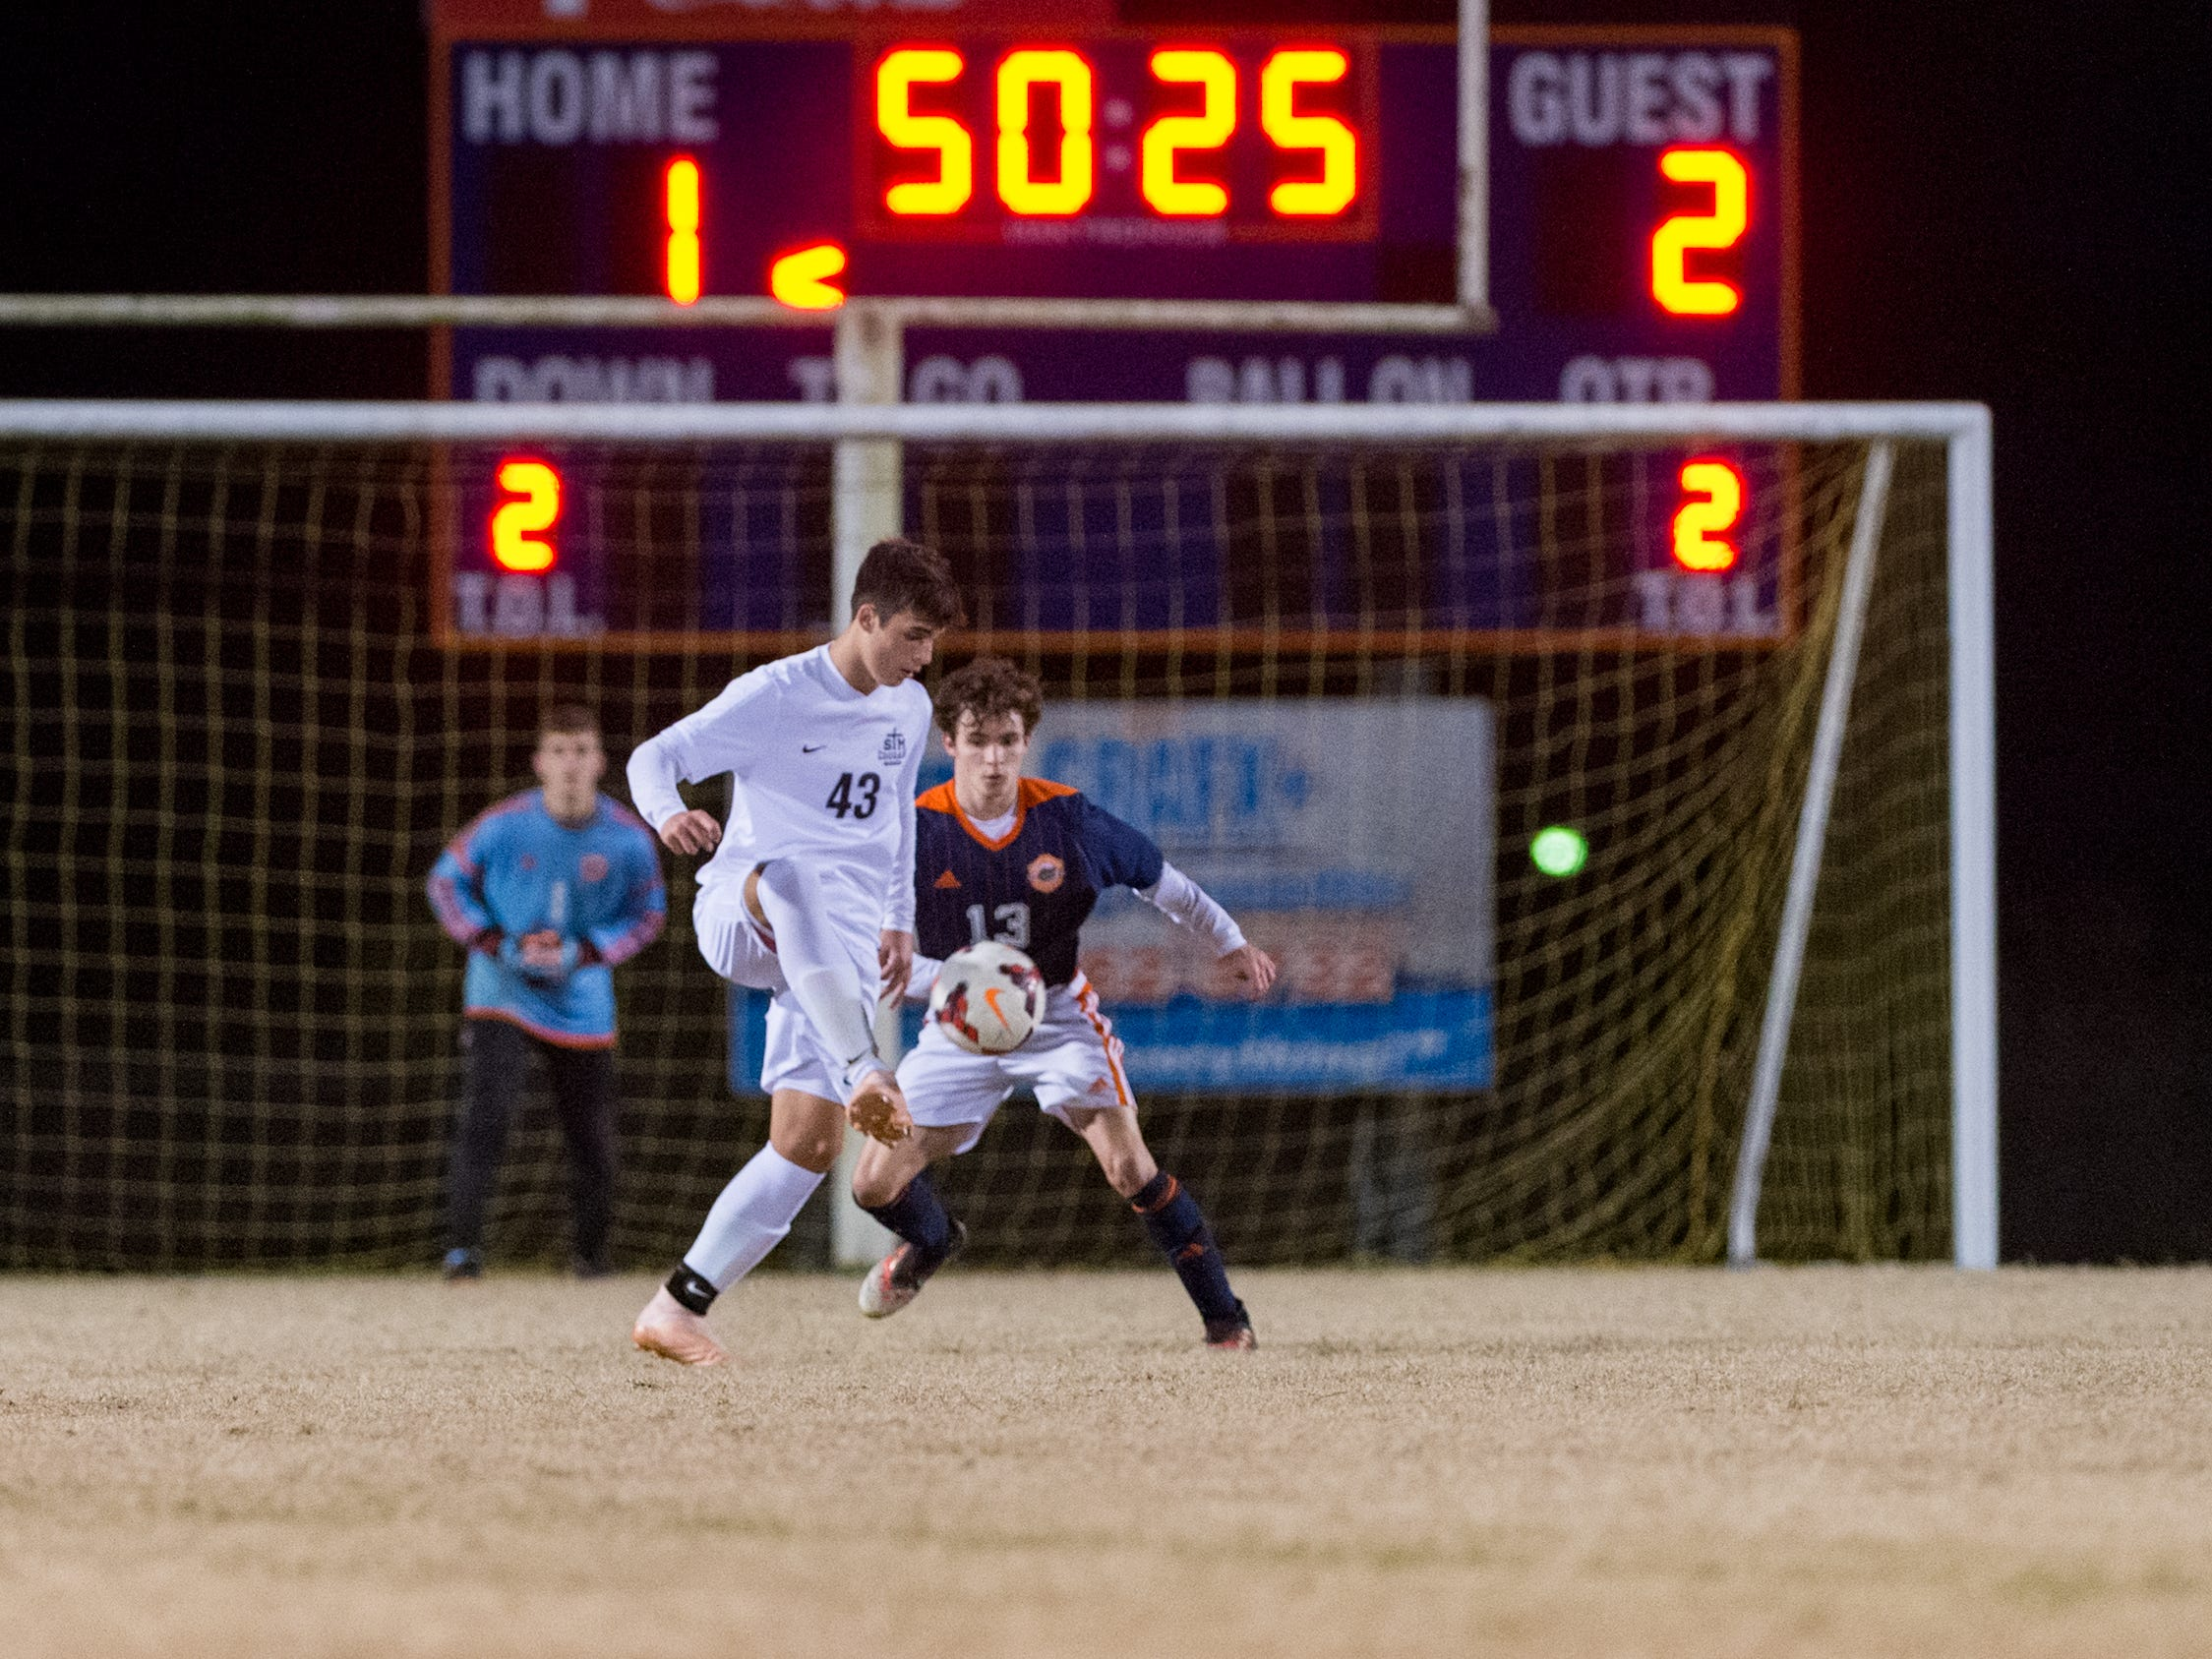 Townes Wallace moves the ball defended by Bryson Noel as Beau Chene takes on STM in Boys soccer. Tuesday, Jan. 22, 2019.